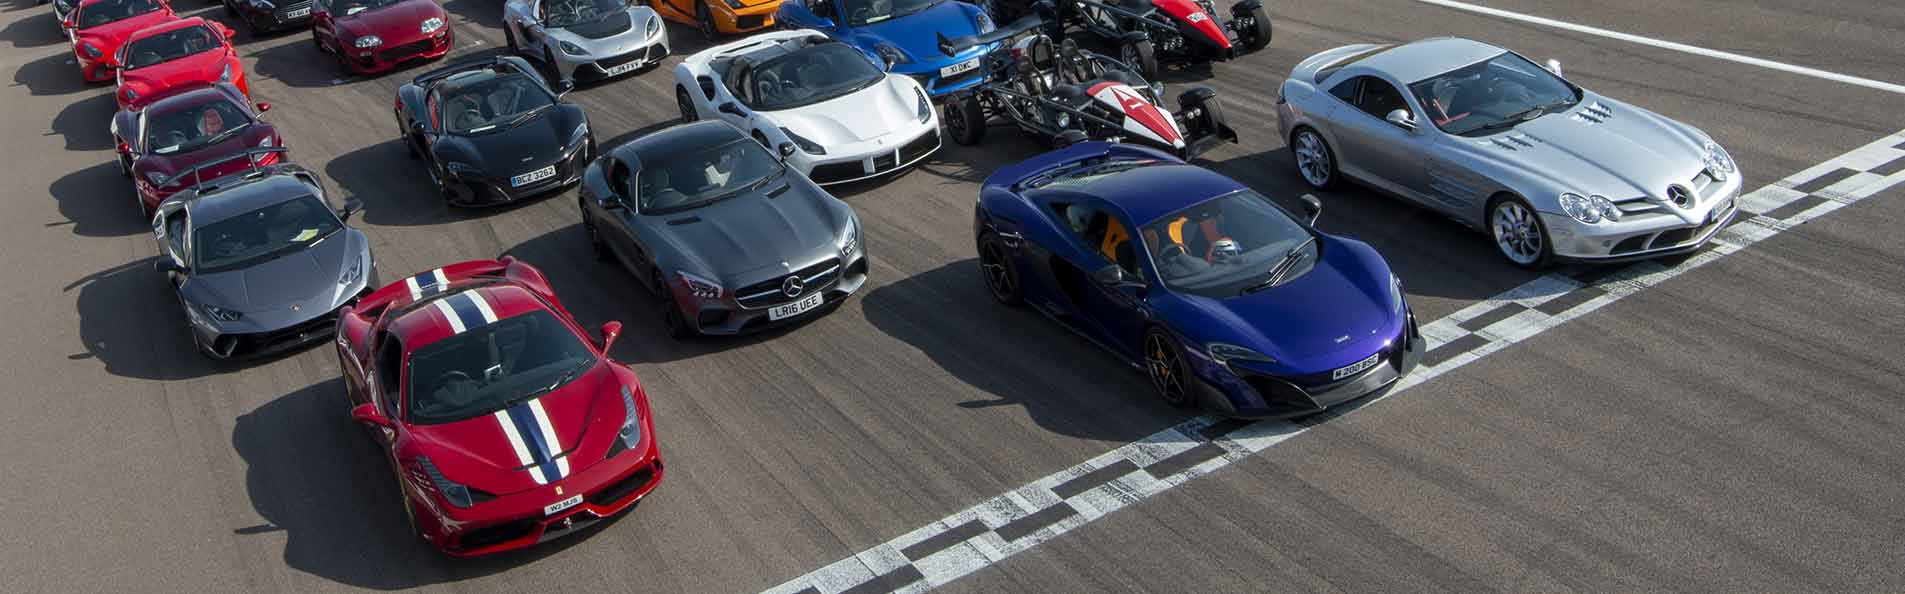 100s of supercars and hypercars take to the track every year at The Supercar Event